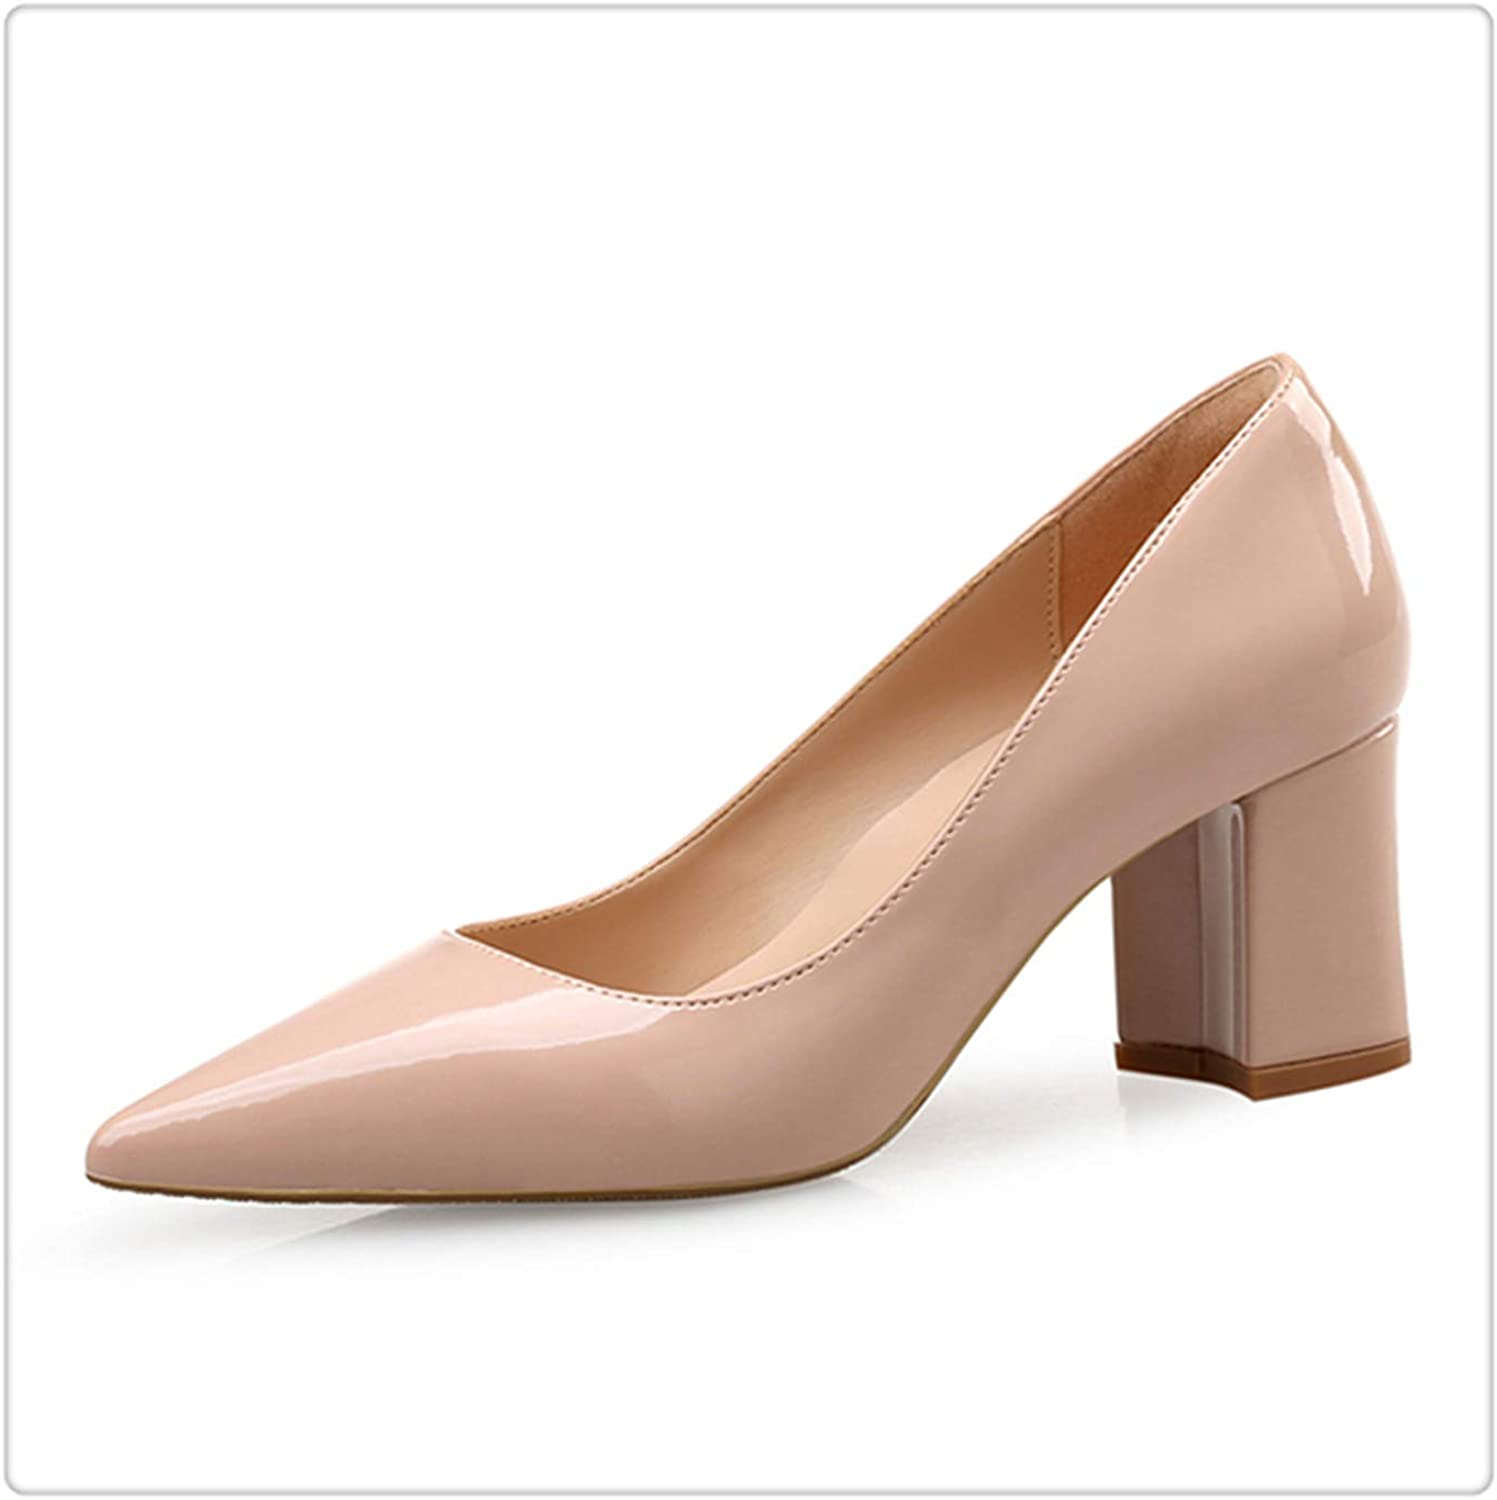 HANGGE& High Heels shoes Women Pumps Patent Leather Spring Single Woman Dress shoes Spring Thick Heels Pointed Toe Leopard Female Pumps Pink PU 9.5